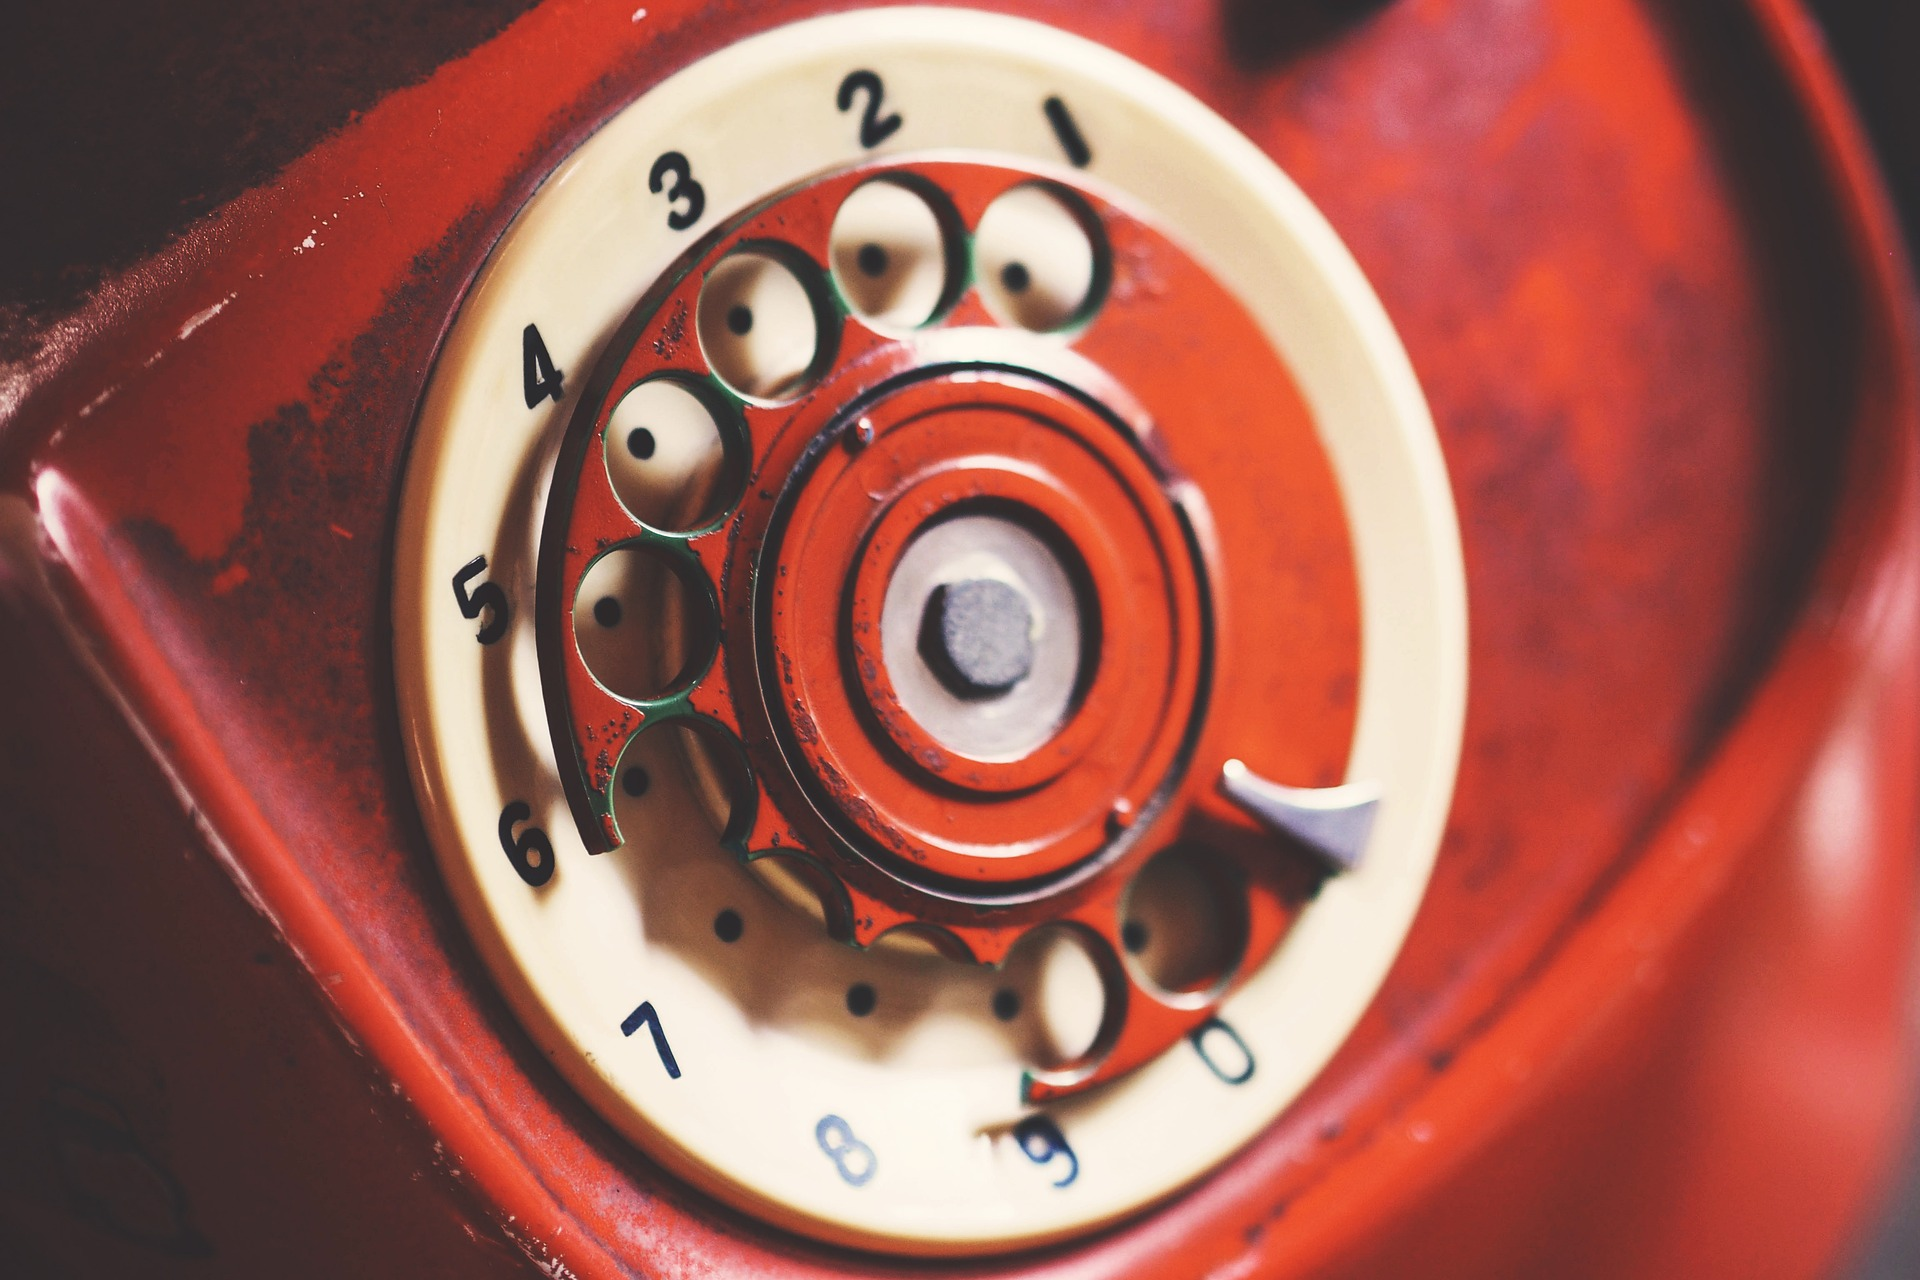 The Old & New: A Rotary Cell Phone!?